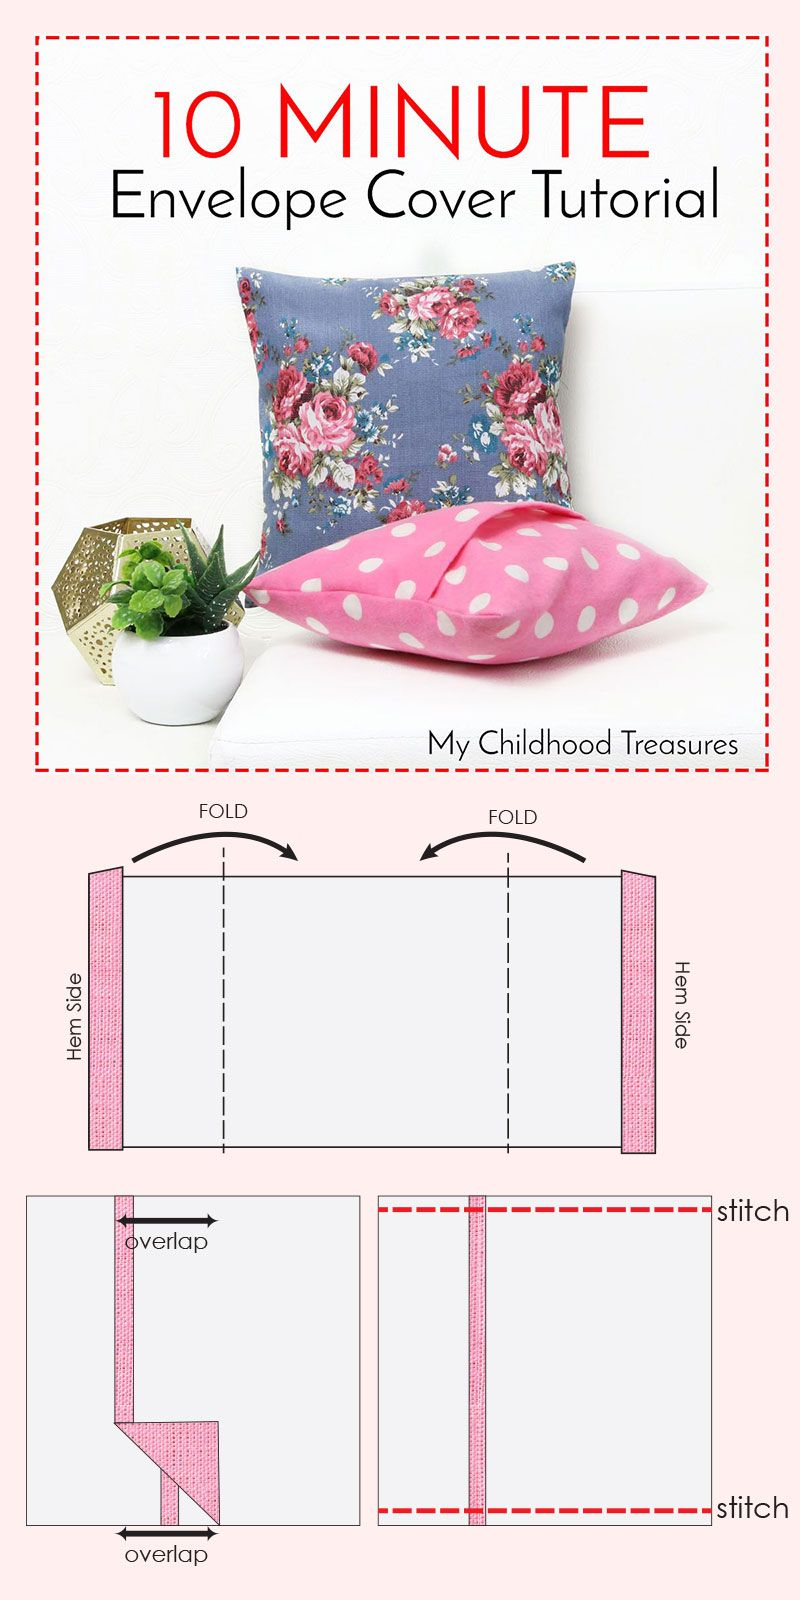 How To Make Cushion Covers Envelope Covers In 10 Minutes Nähen